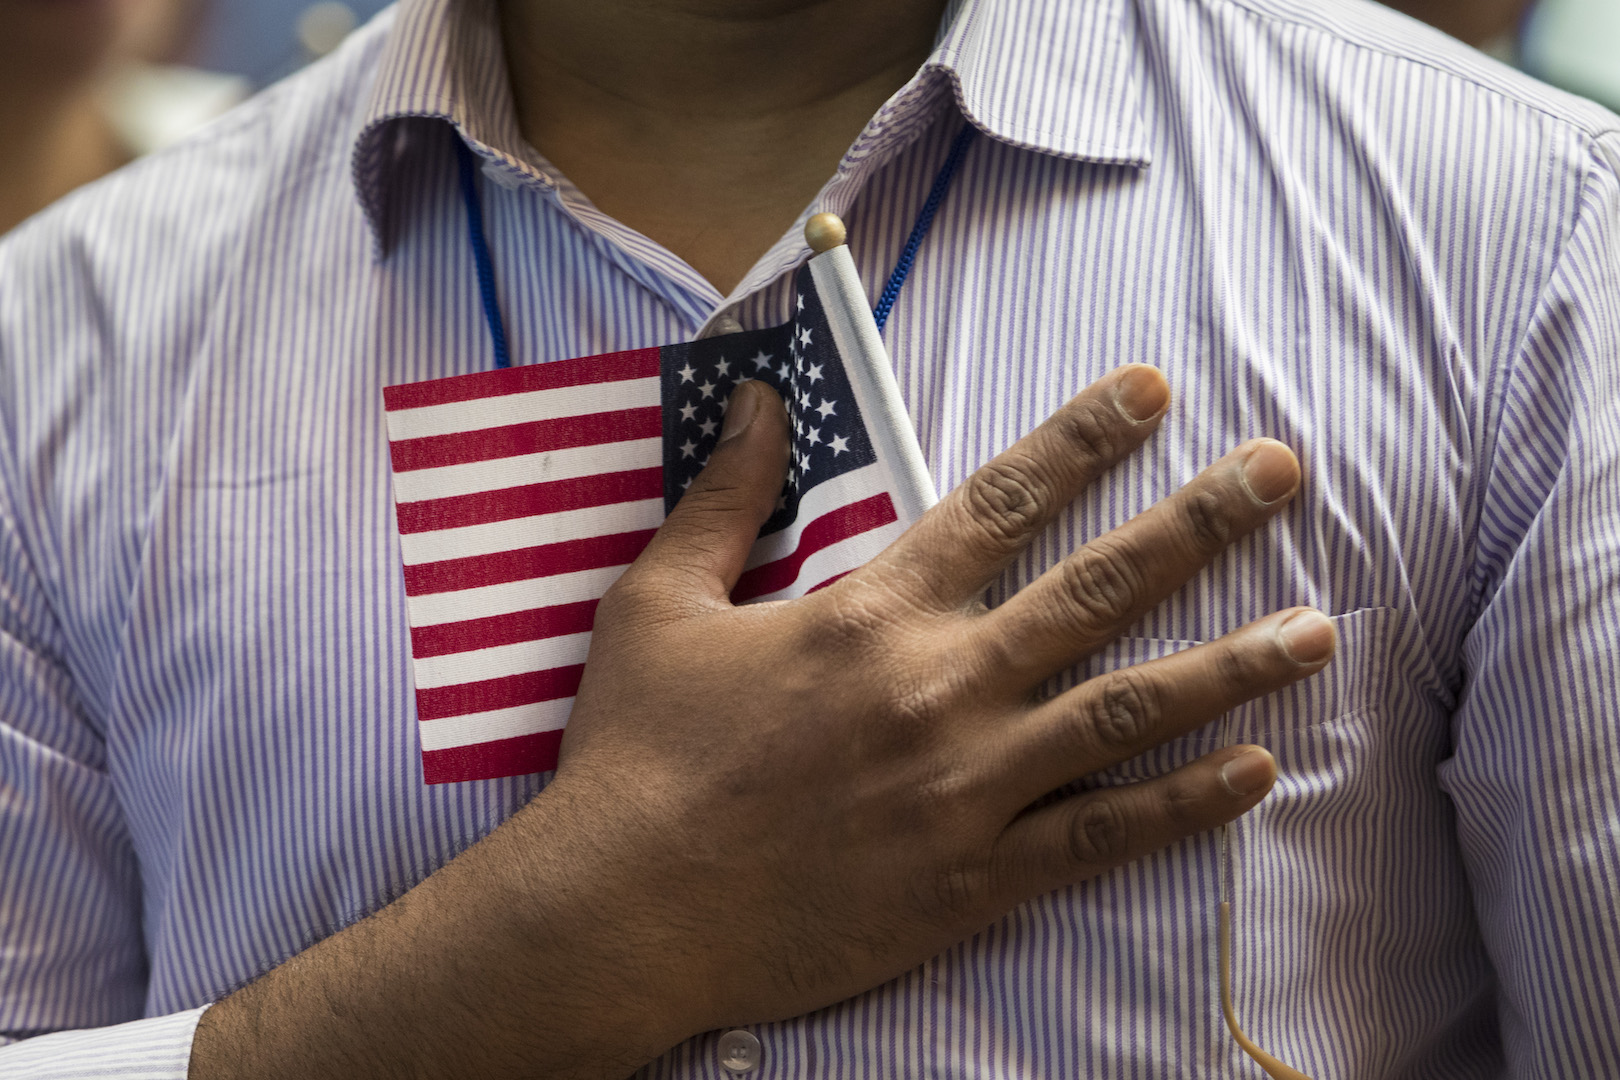 Court docket Principles Trump Can Deport 300,000 Migrants Who've Lived within the U.S. Legally for Years